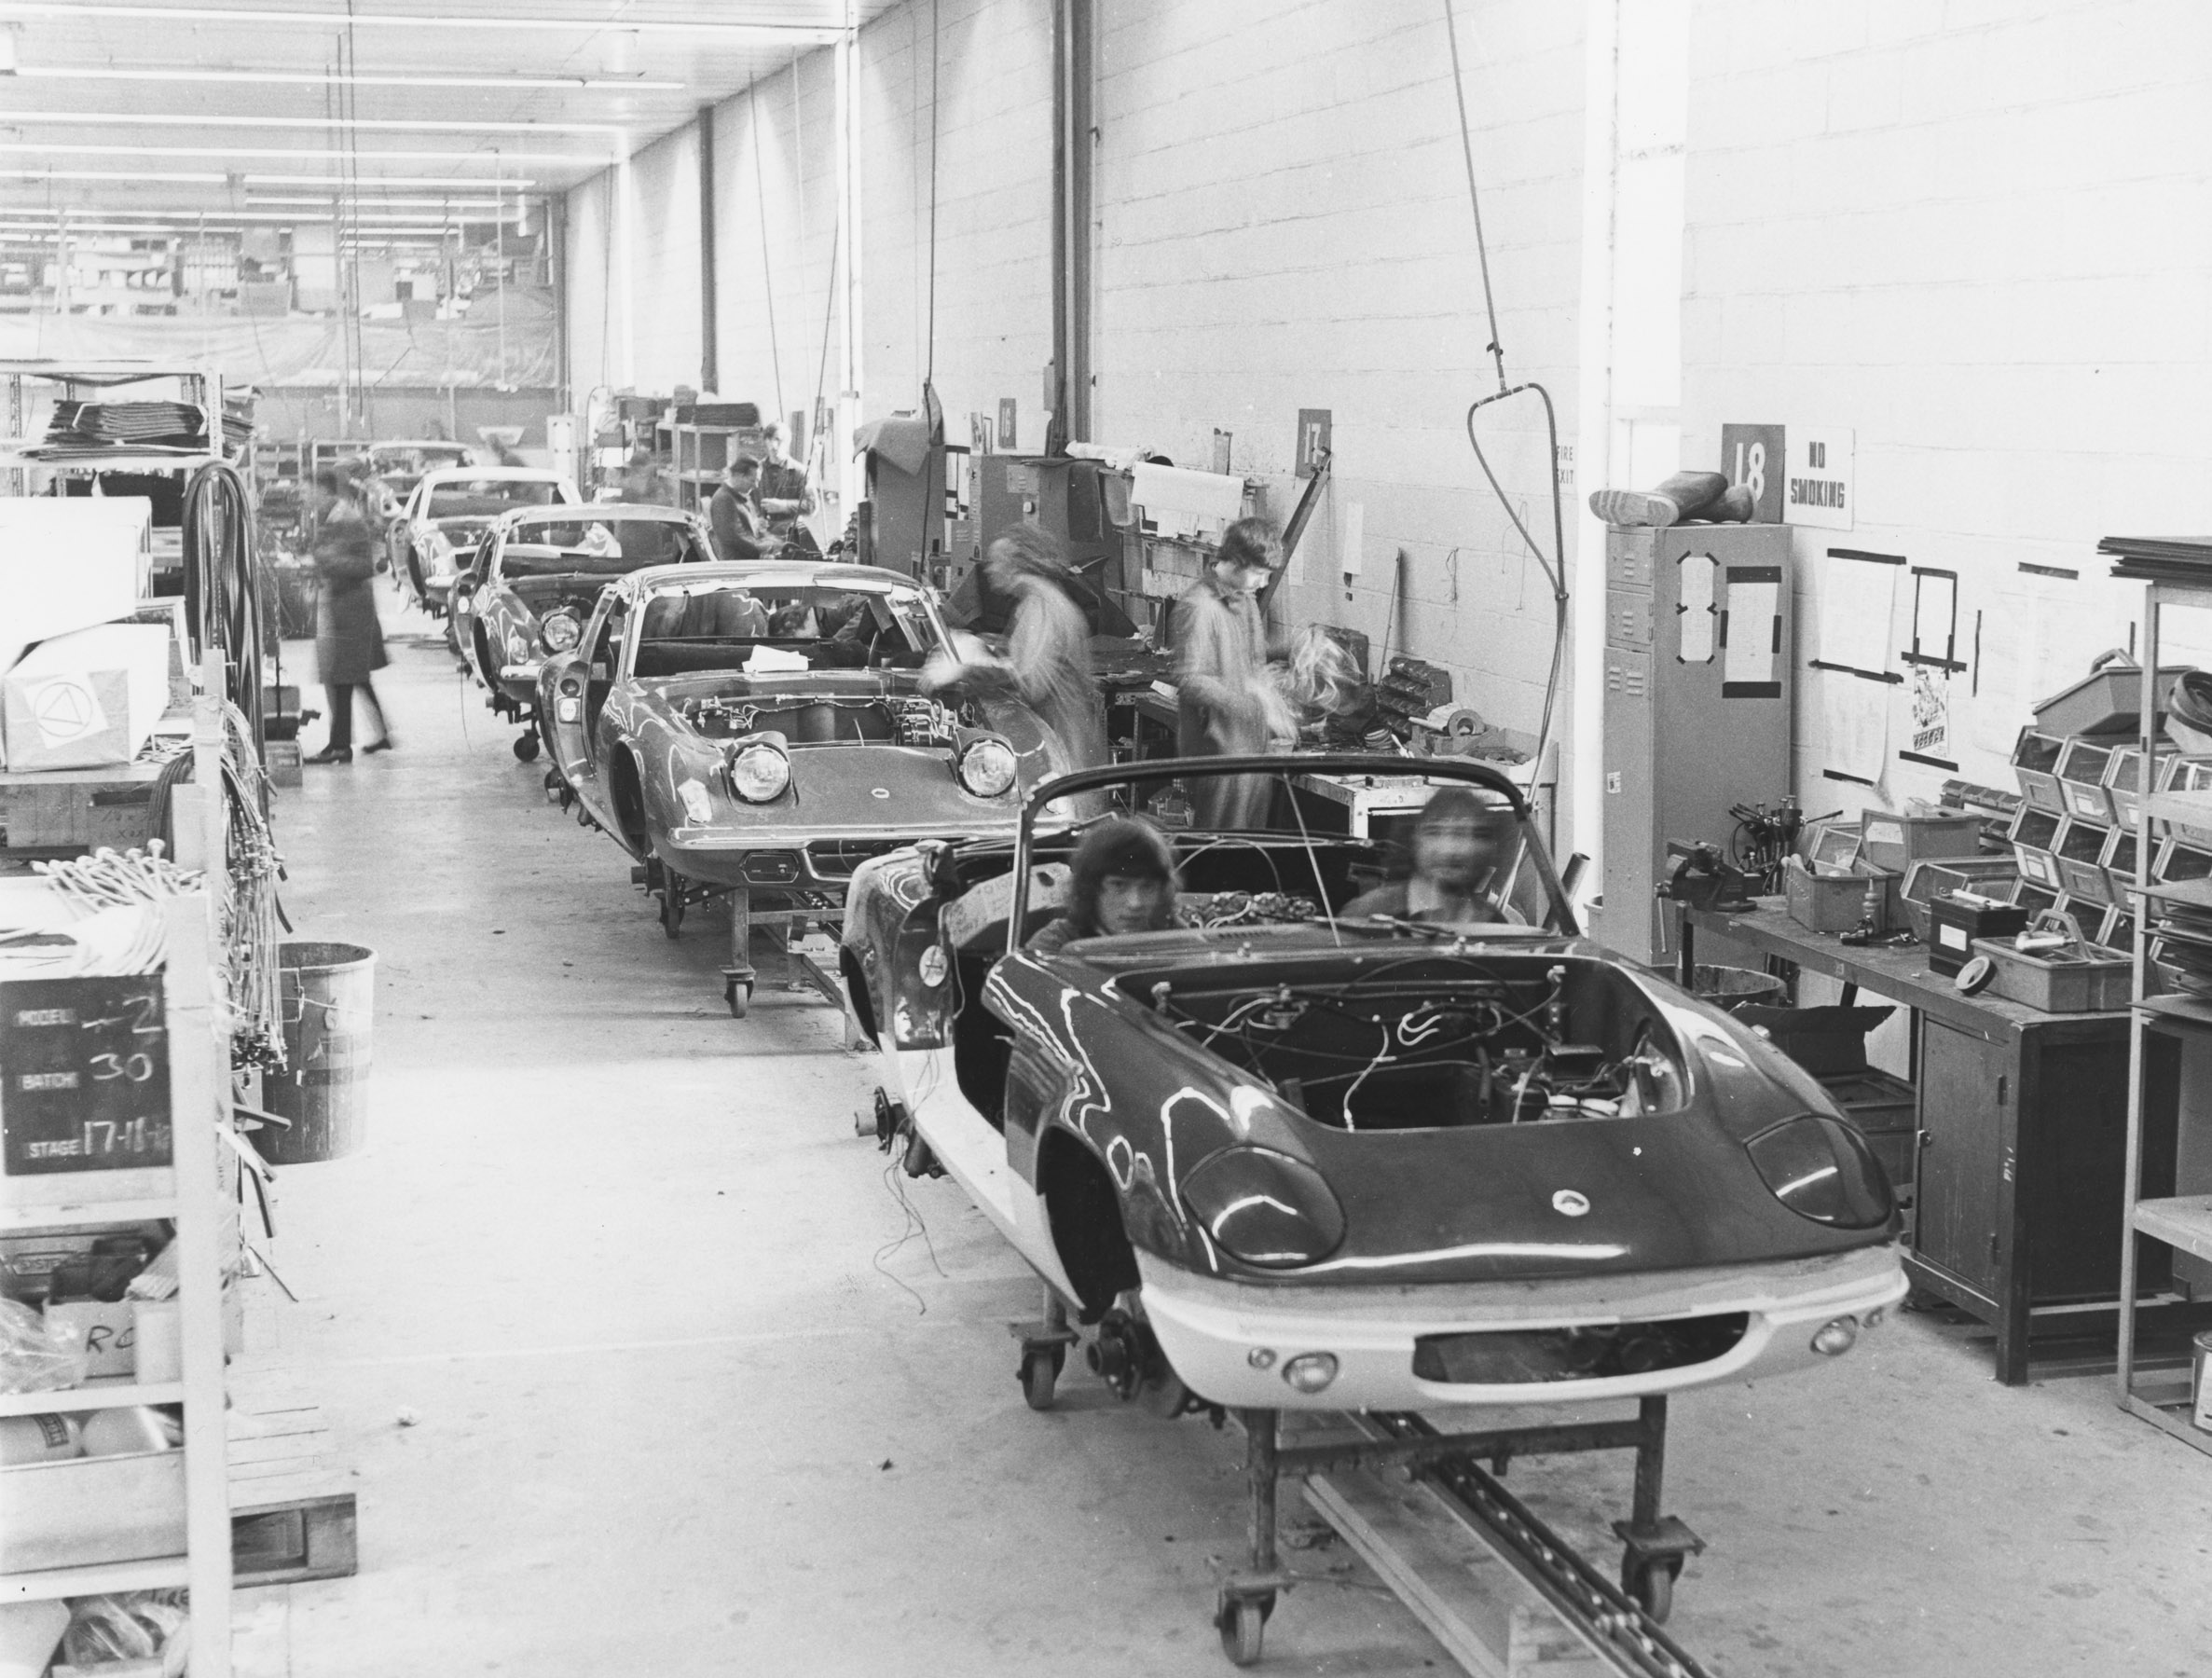 1969 photo of Lotus Elans on the production line at Hethel. (Picture courtesy Lotus).